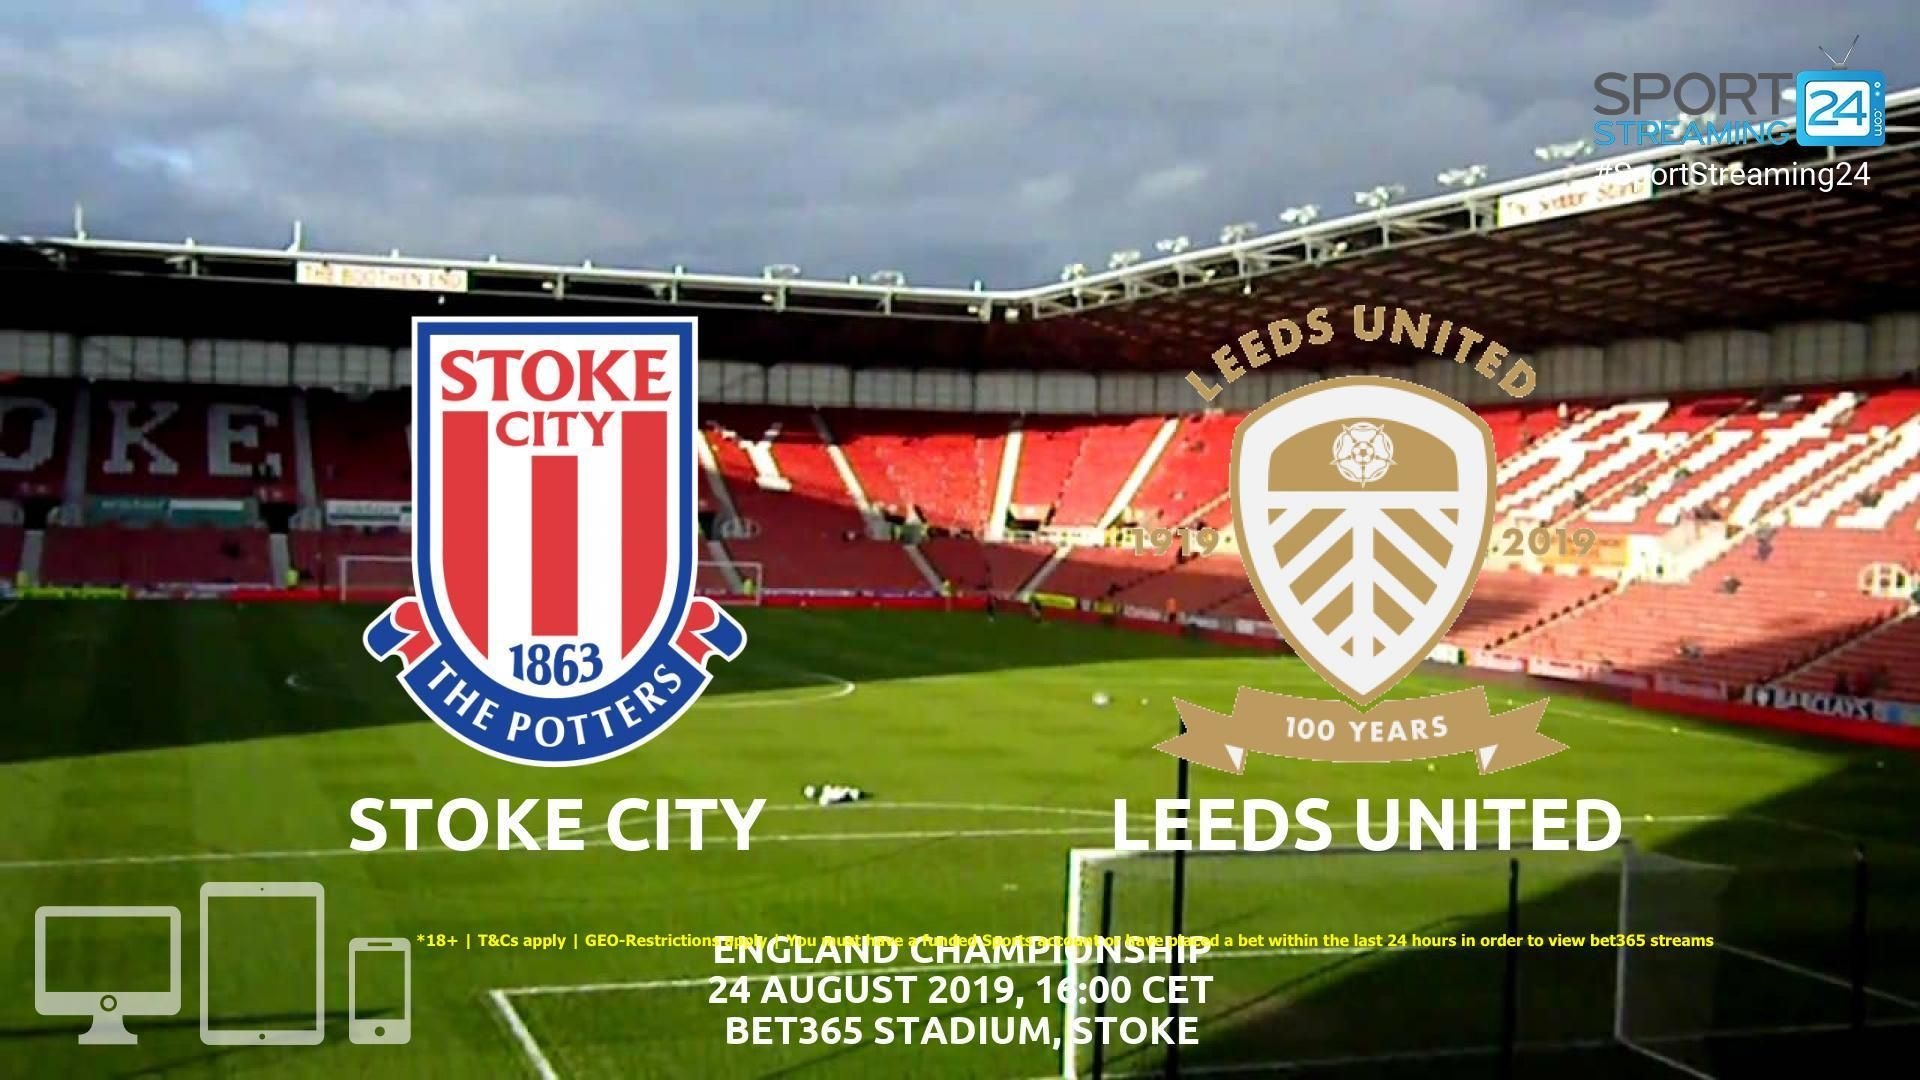 Streaming News And Match Previews Sportstreaming24 Stoke City Leeds United Arsenal Tottenham